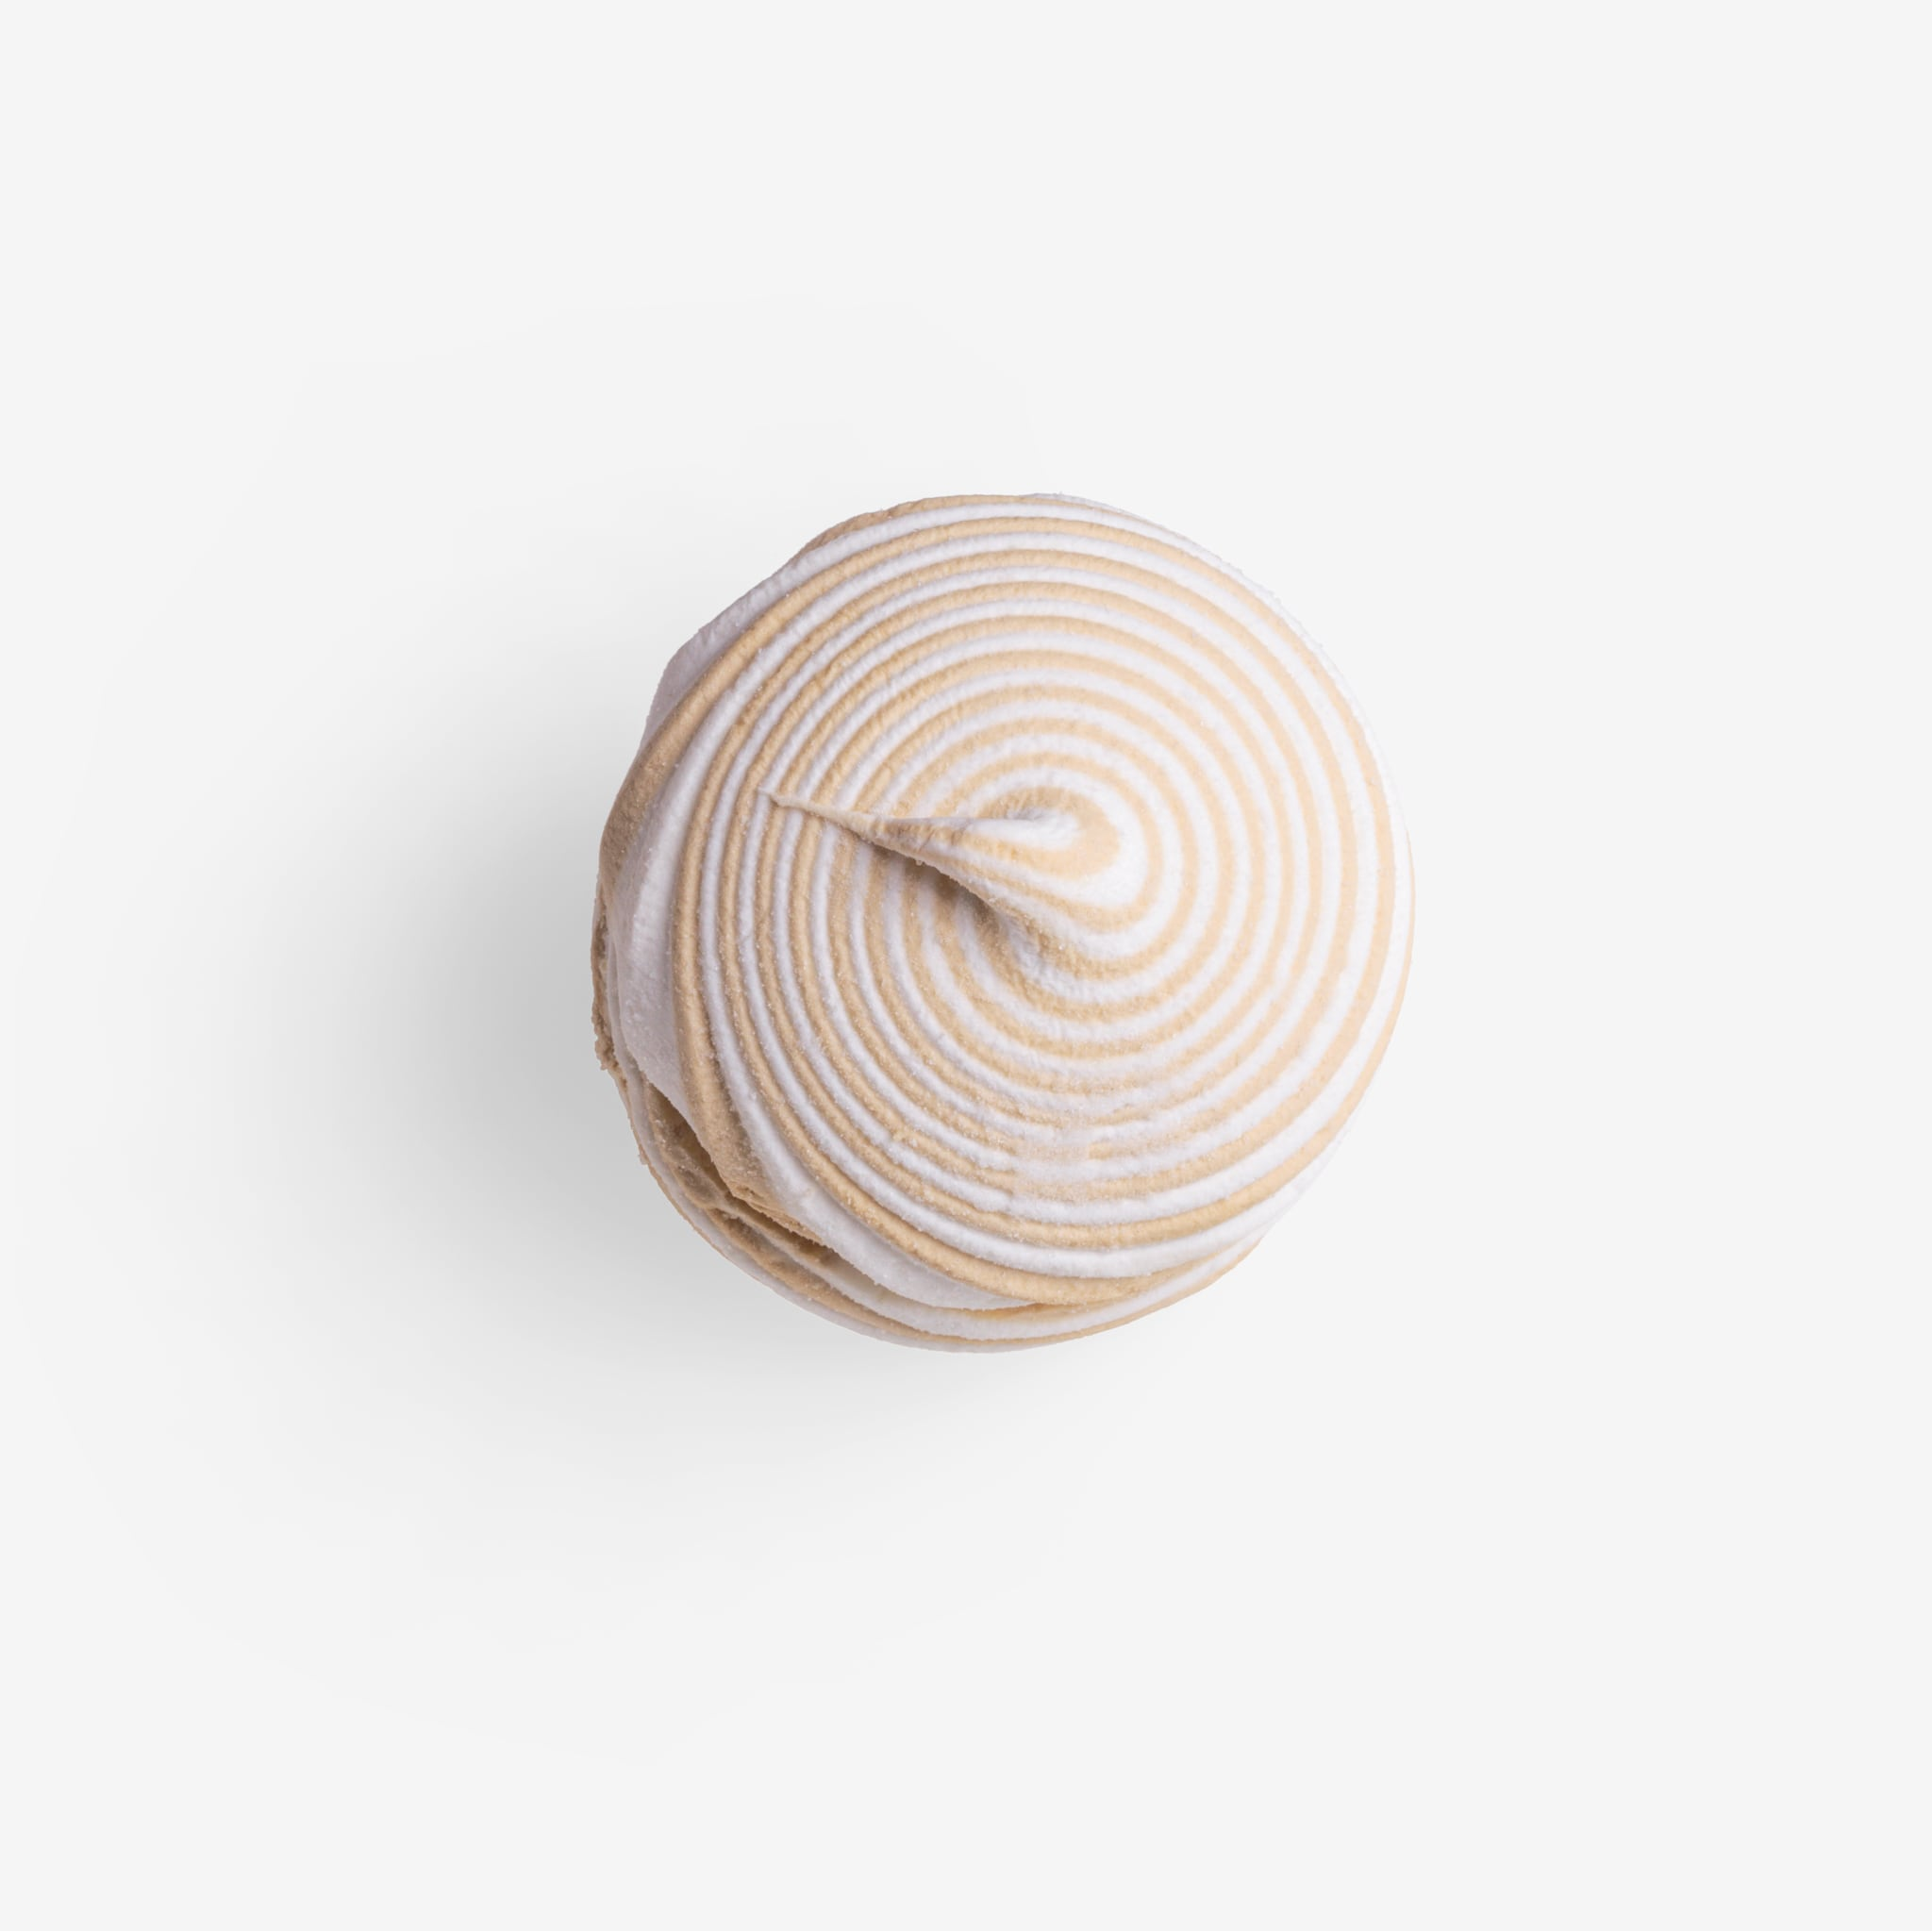 Marshmallow PSD image with transparent background